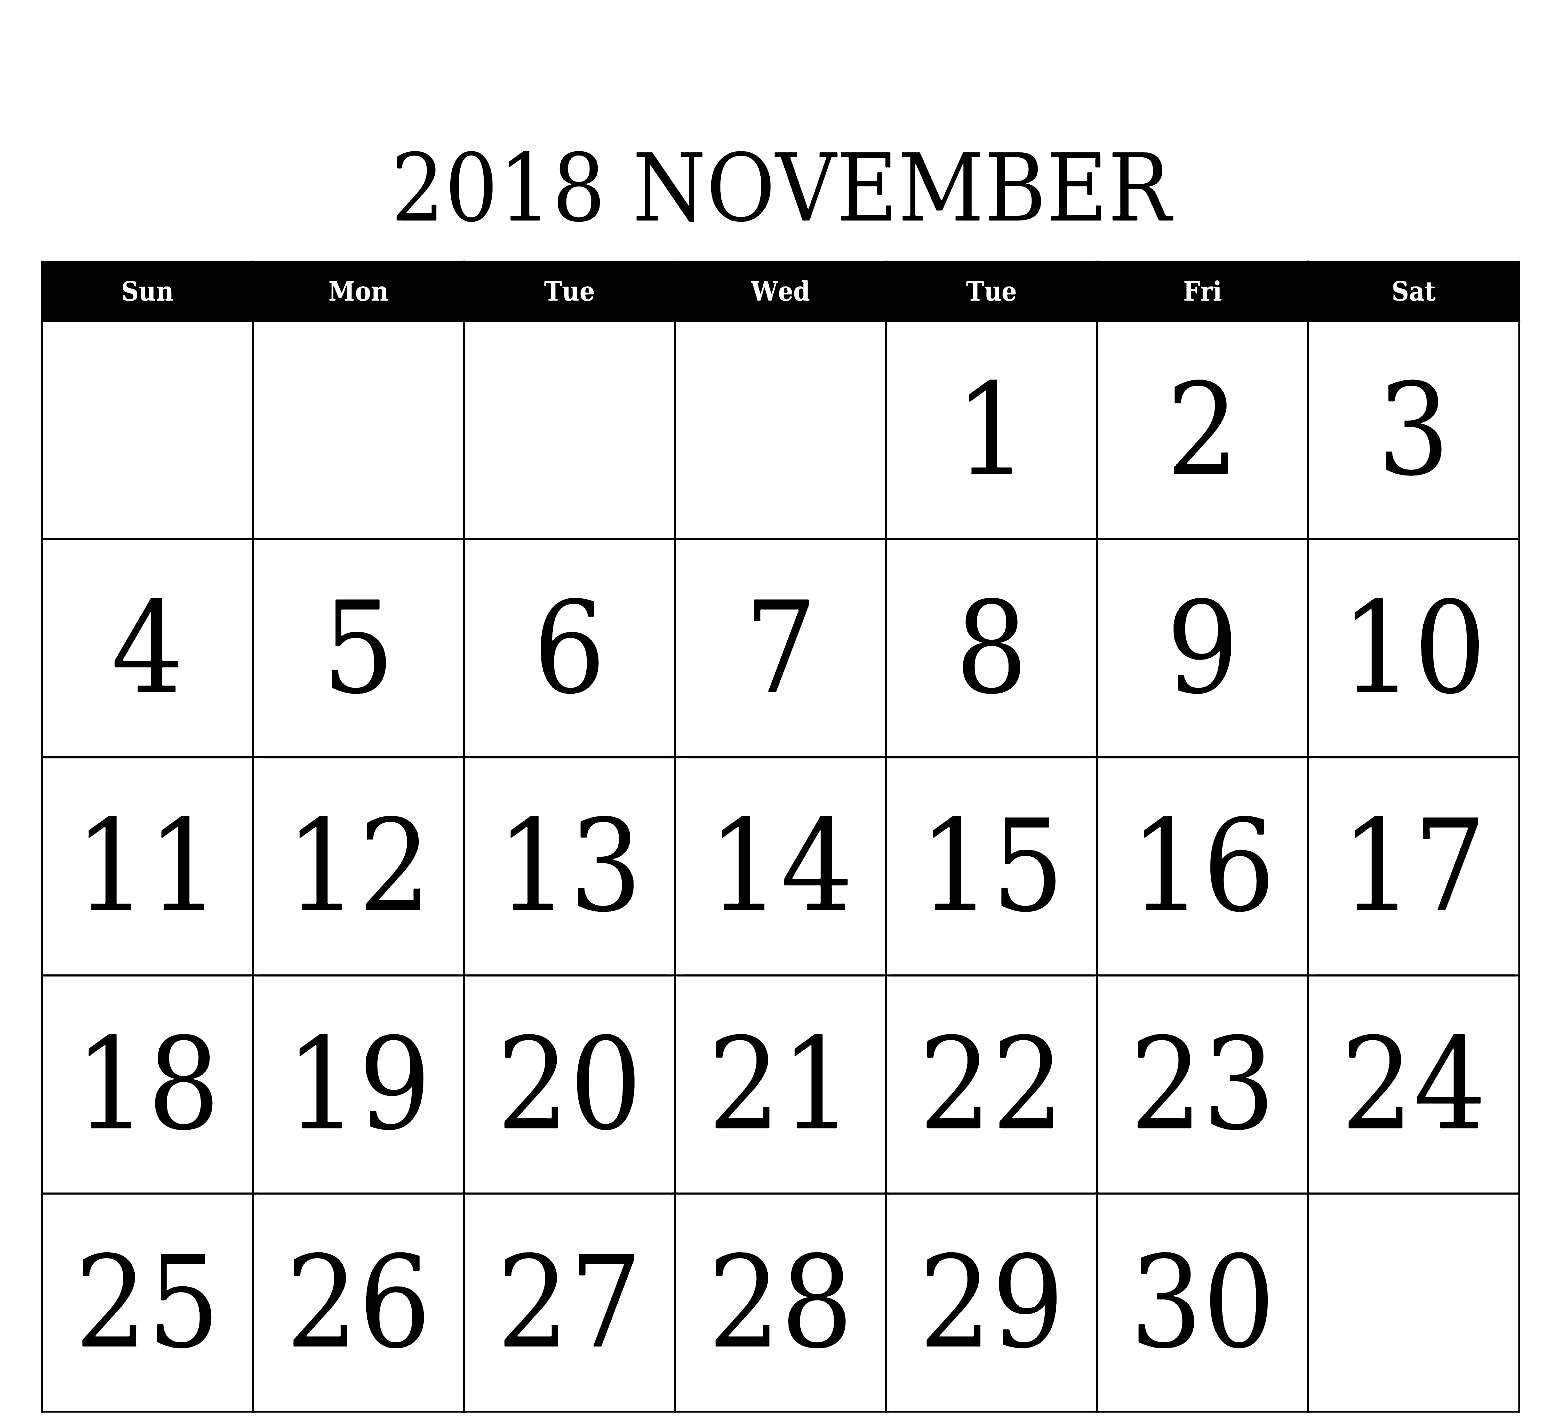 november 2018 calendar ms word calendar printable with holidays November 2018 Calendar MS Word erdferdf